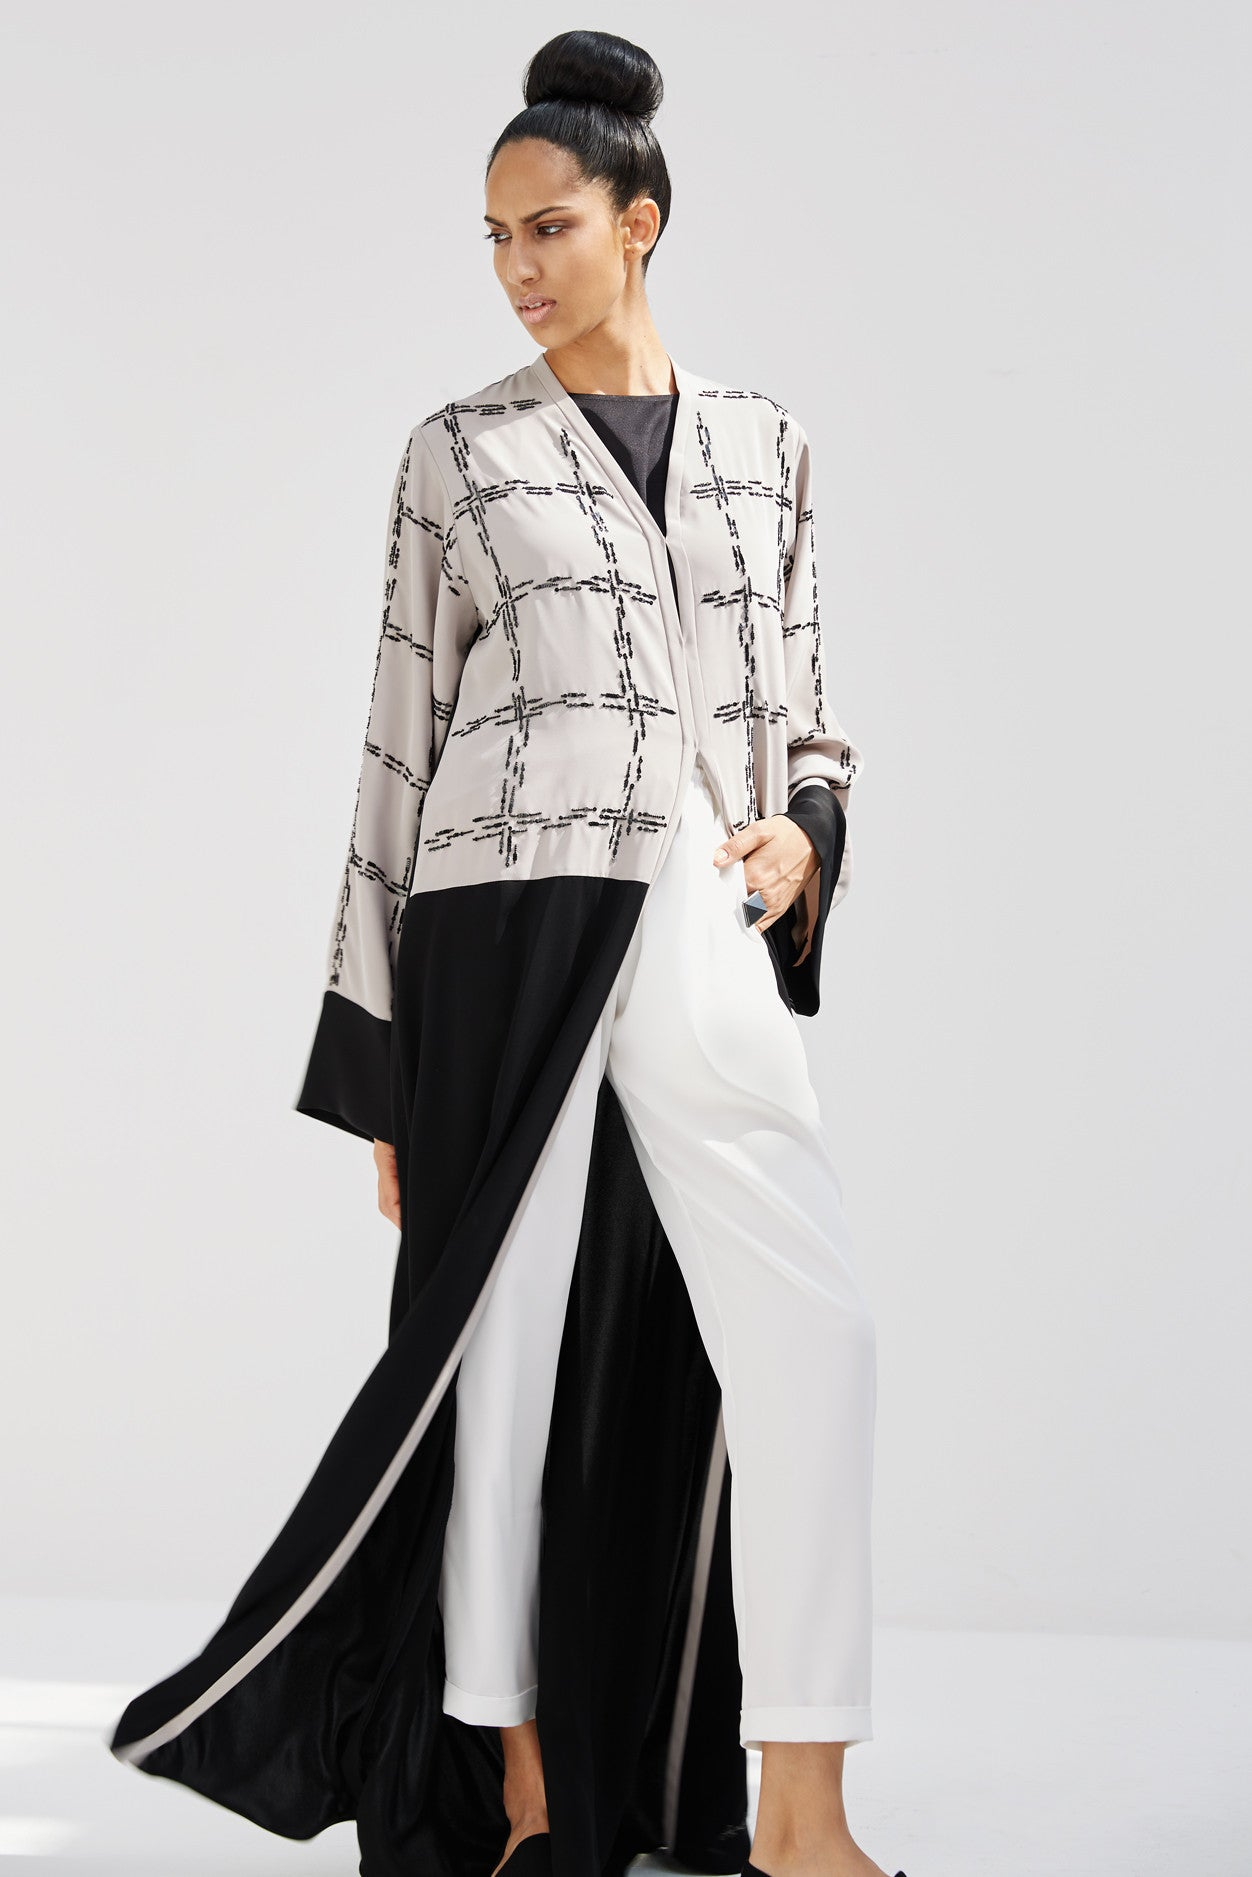 OPHELIA - ACR1917A - Arabesque classic cut abaya with graphic motif, beads and sequences embroidery on bust and sleeves.